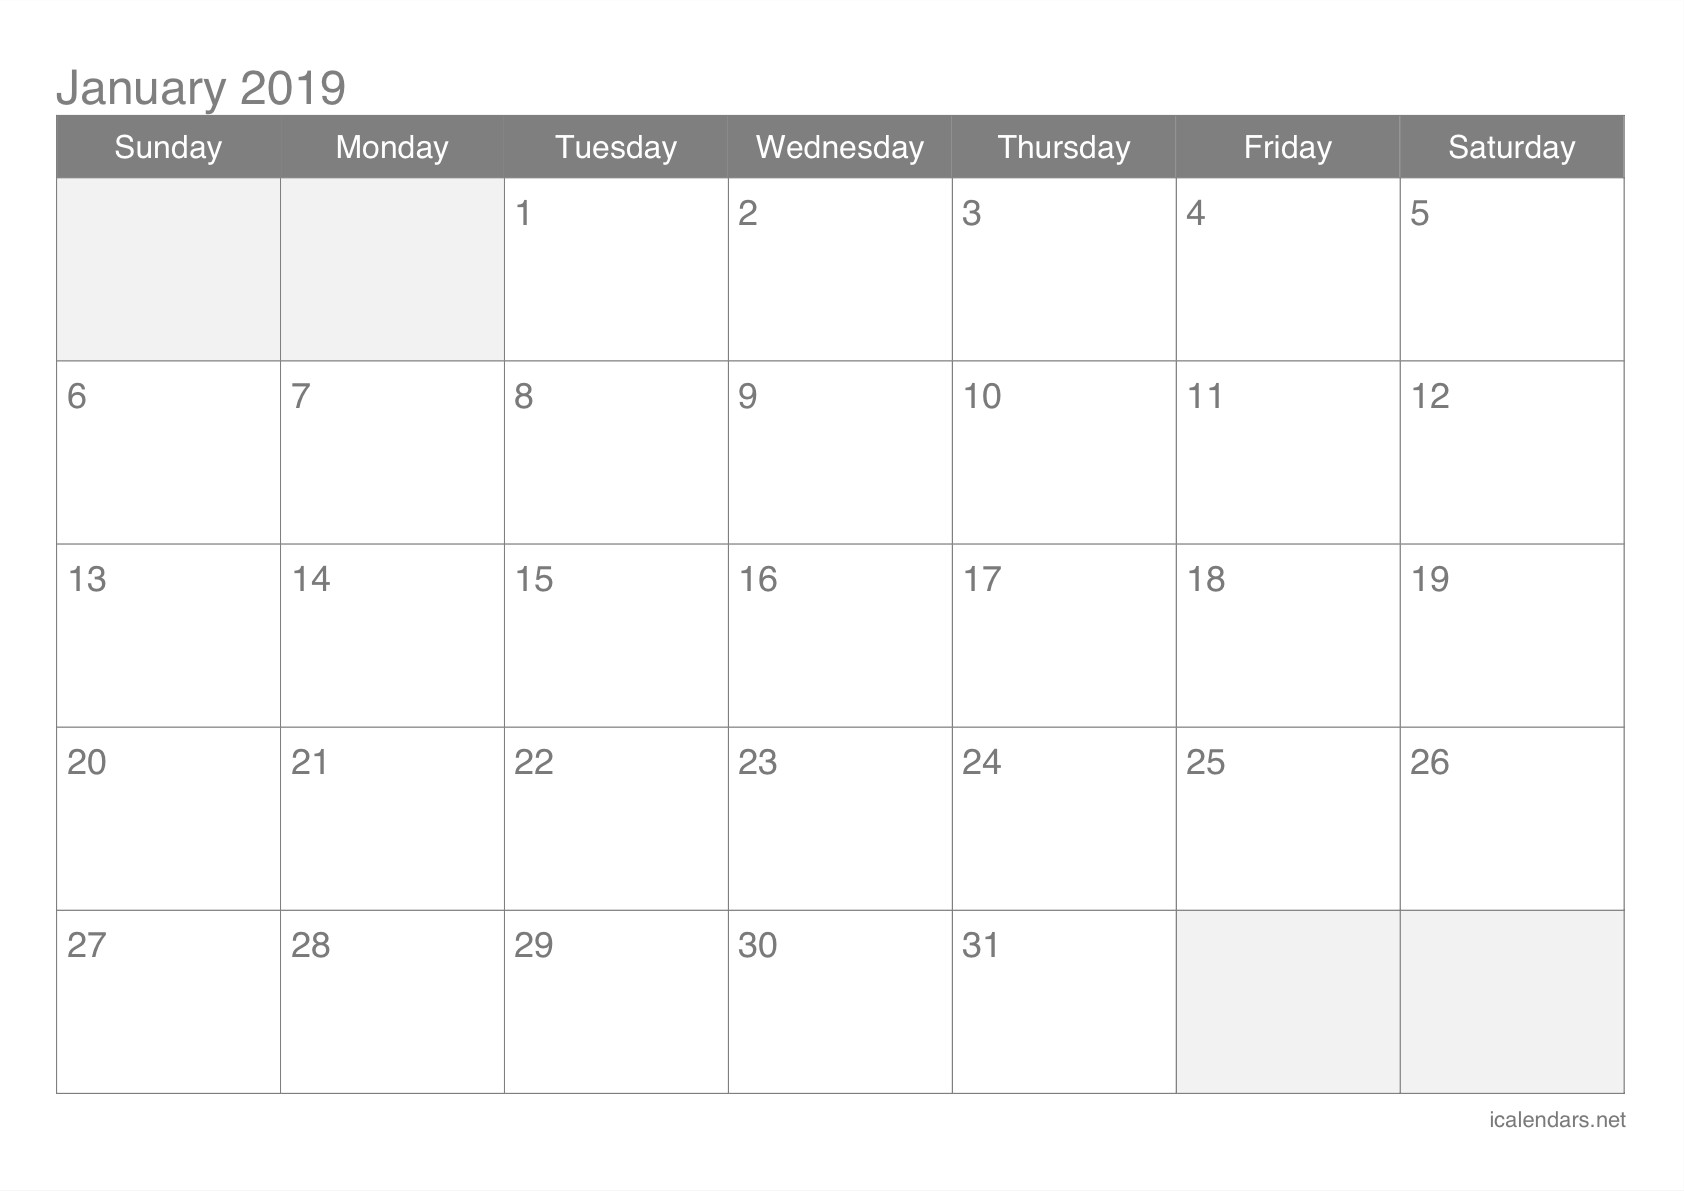 Calendario Chile 2019 Chile Actual 2019 January Calendar Blank Januarycalendar January2019caledar Of Calendario Chile 2019 Chile Más Populares Nautical Free Free Nautical Charts & Publications No Image Version